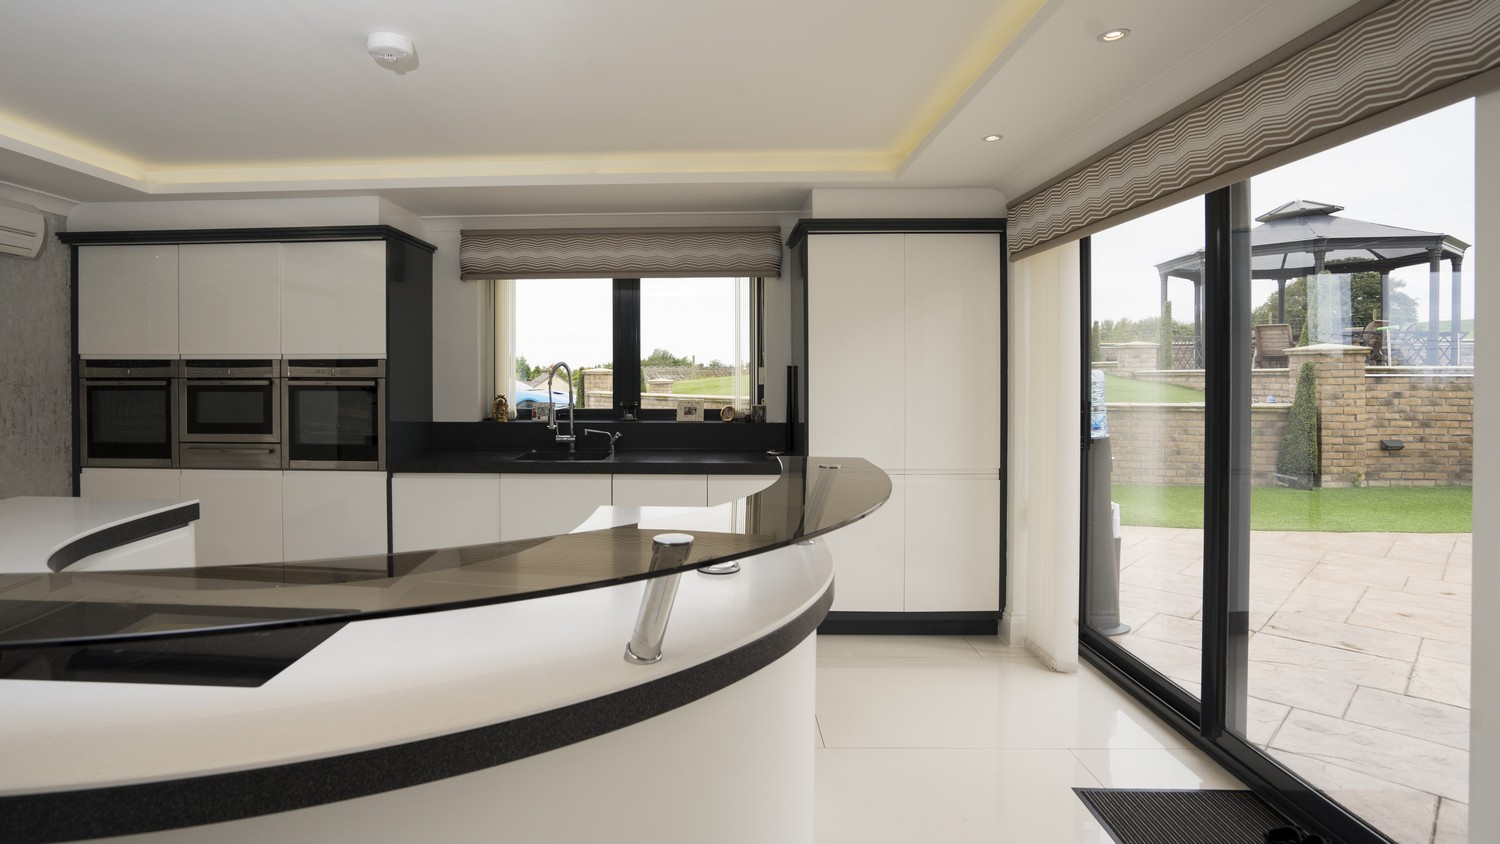 Another view of the kitchen highlighting the large sliding door giving great views of the outside space and a great flow between the in and outdoors when required.